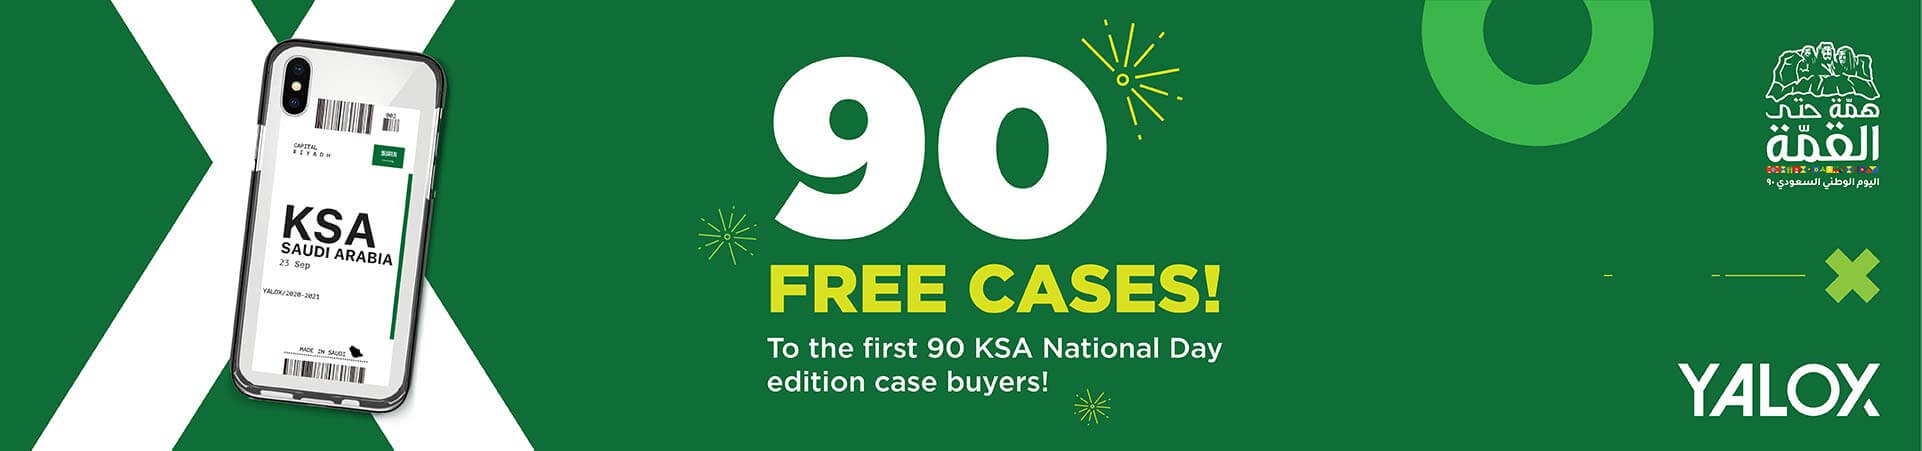 KSA National Day Offer